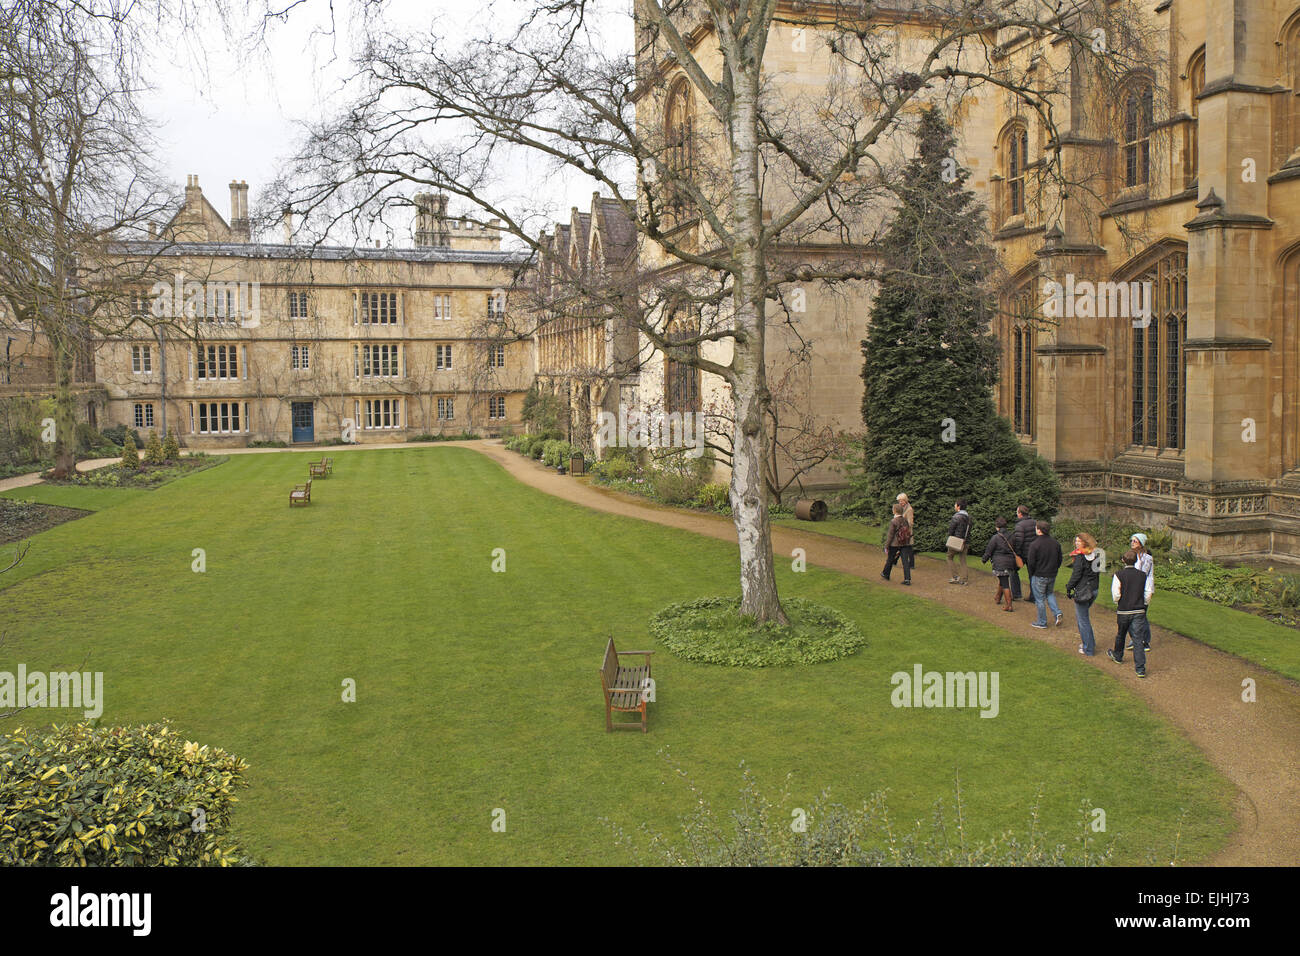 Fellows Garden, Exeter College, Oxford, Oxfordshire, England, UK. Founded in 1314 by Walter de Stapeldon, Bishop - Stock Image